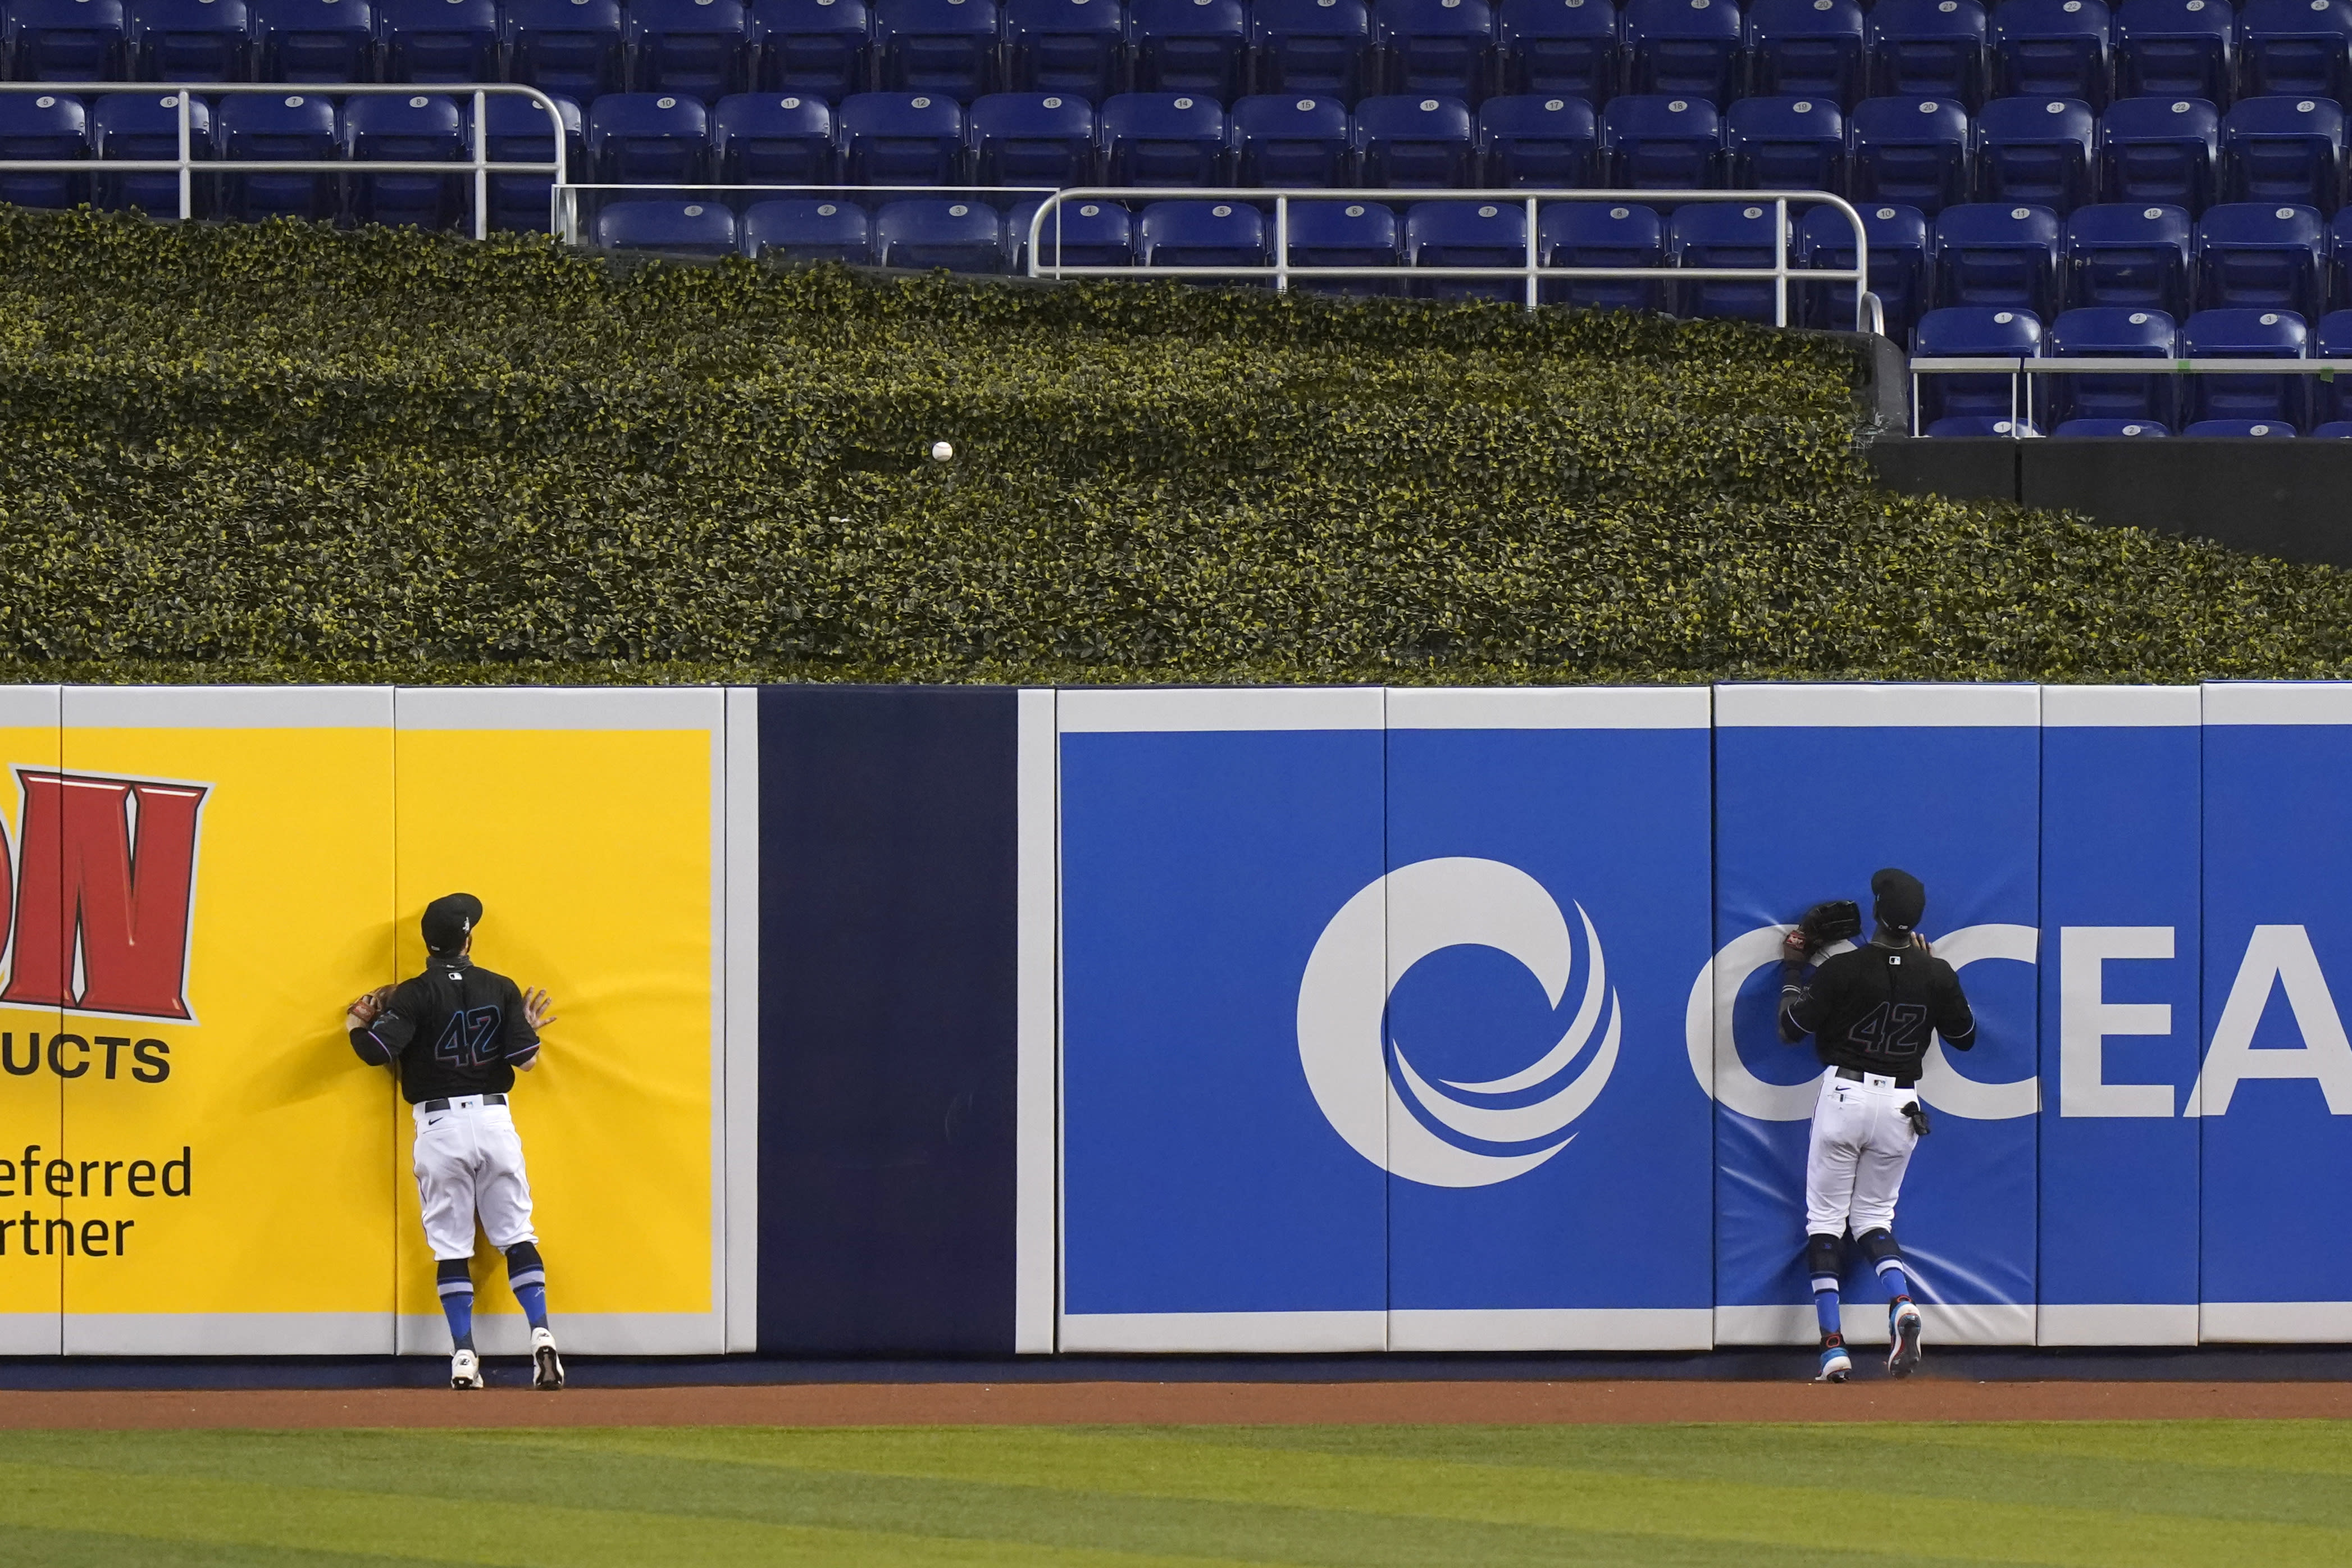 Outfielders Jon Berti, left, and Lewis Brinson watch as a ball hit by Tampa Bay Rays' Yoshitomo Tsutsugo goes over the wall for a two-run home run during the first inning of a baseball game, Sunday, Aug. 30, 2020, in Miami. (AP Photo/Wilfredo Lee)